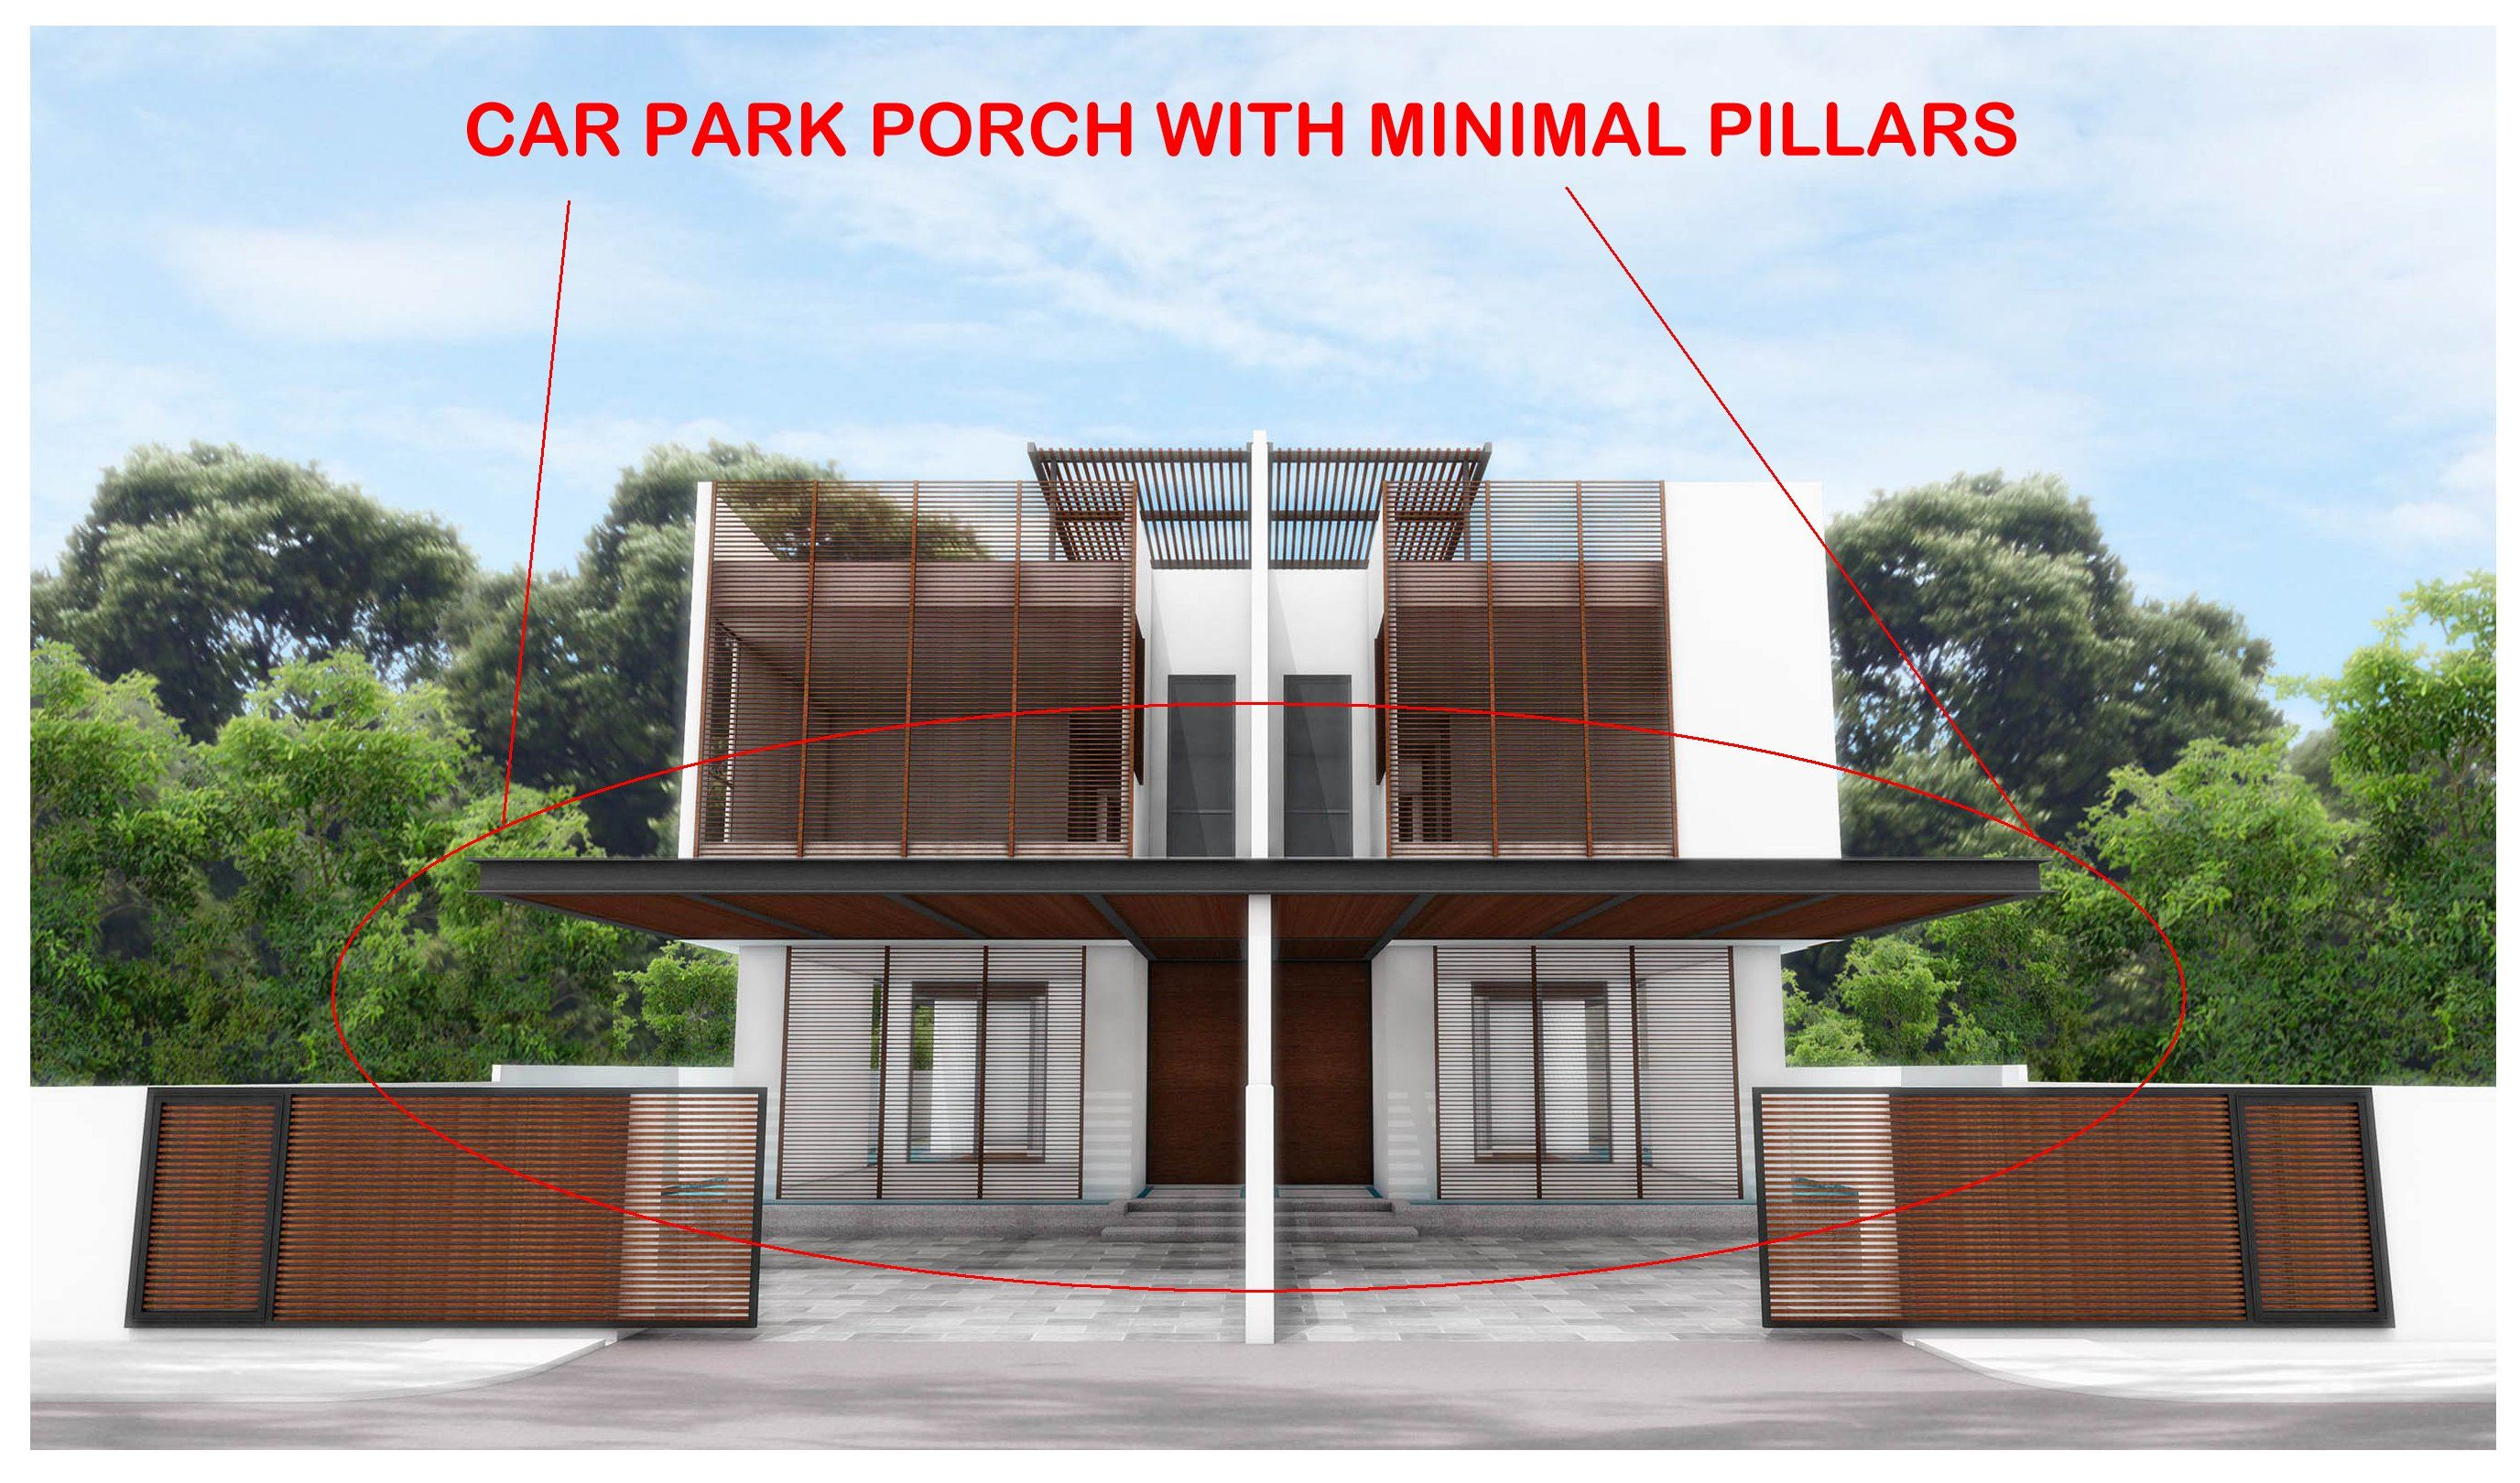 131 Reference Of Car Porch Pillars Designs In 2020